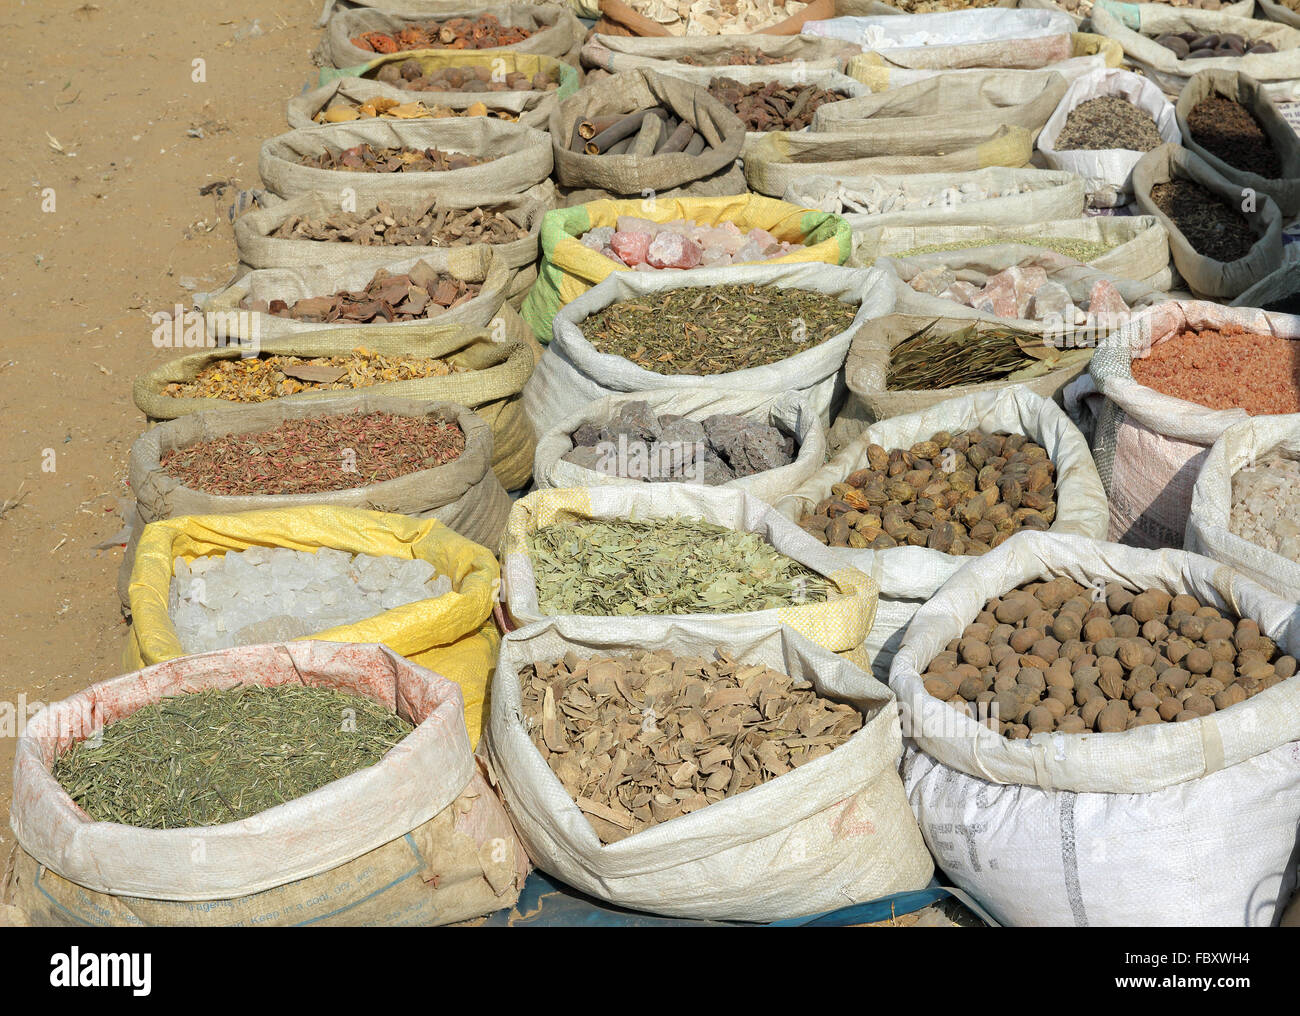 bags with spices on indian market - Stock Image